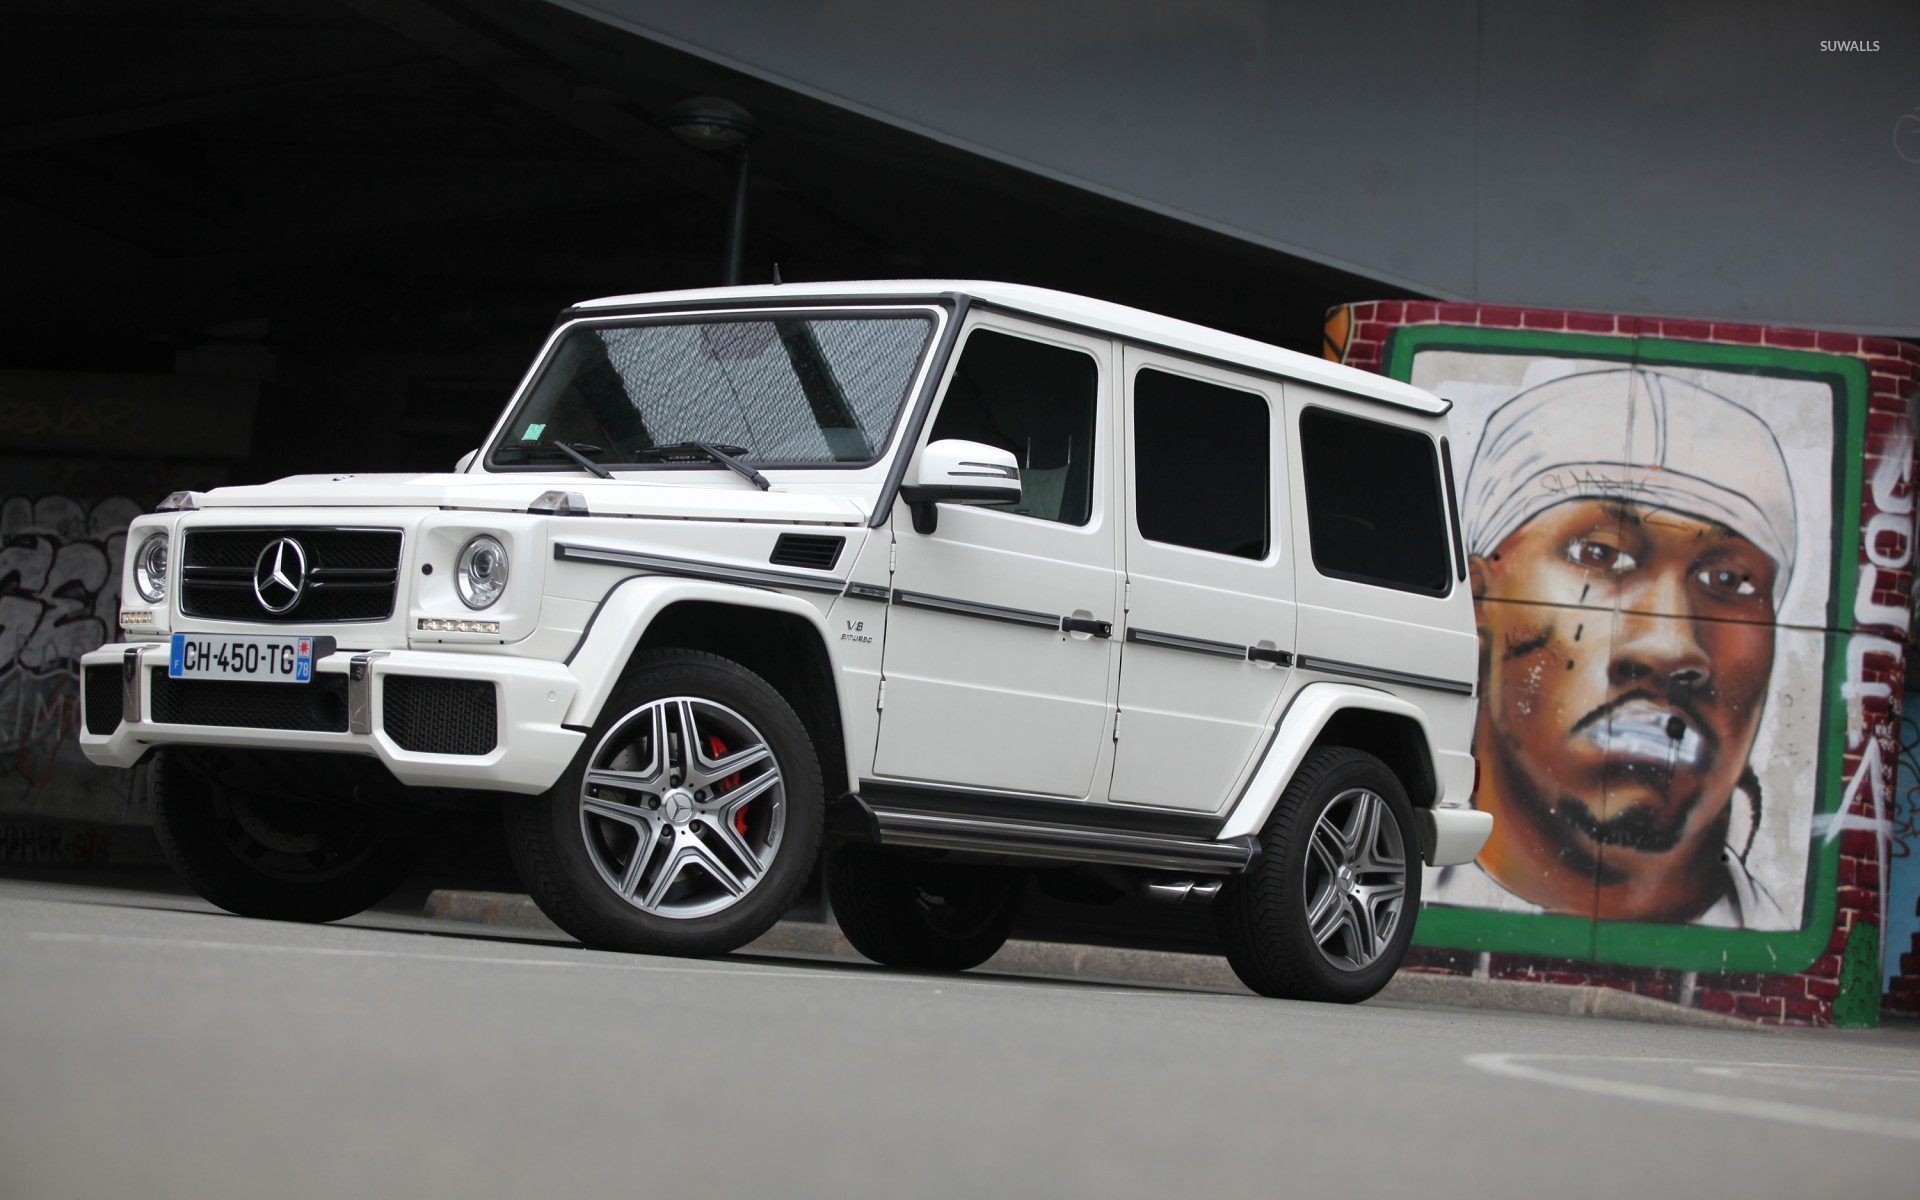 Mercedes benz g63 amg wallpaper car wallpapers 39349 for G63 amg mercedes benz